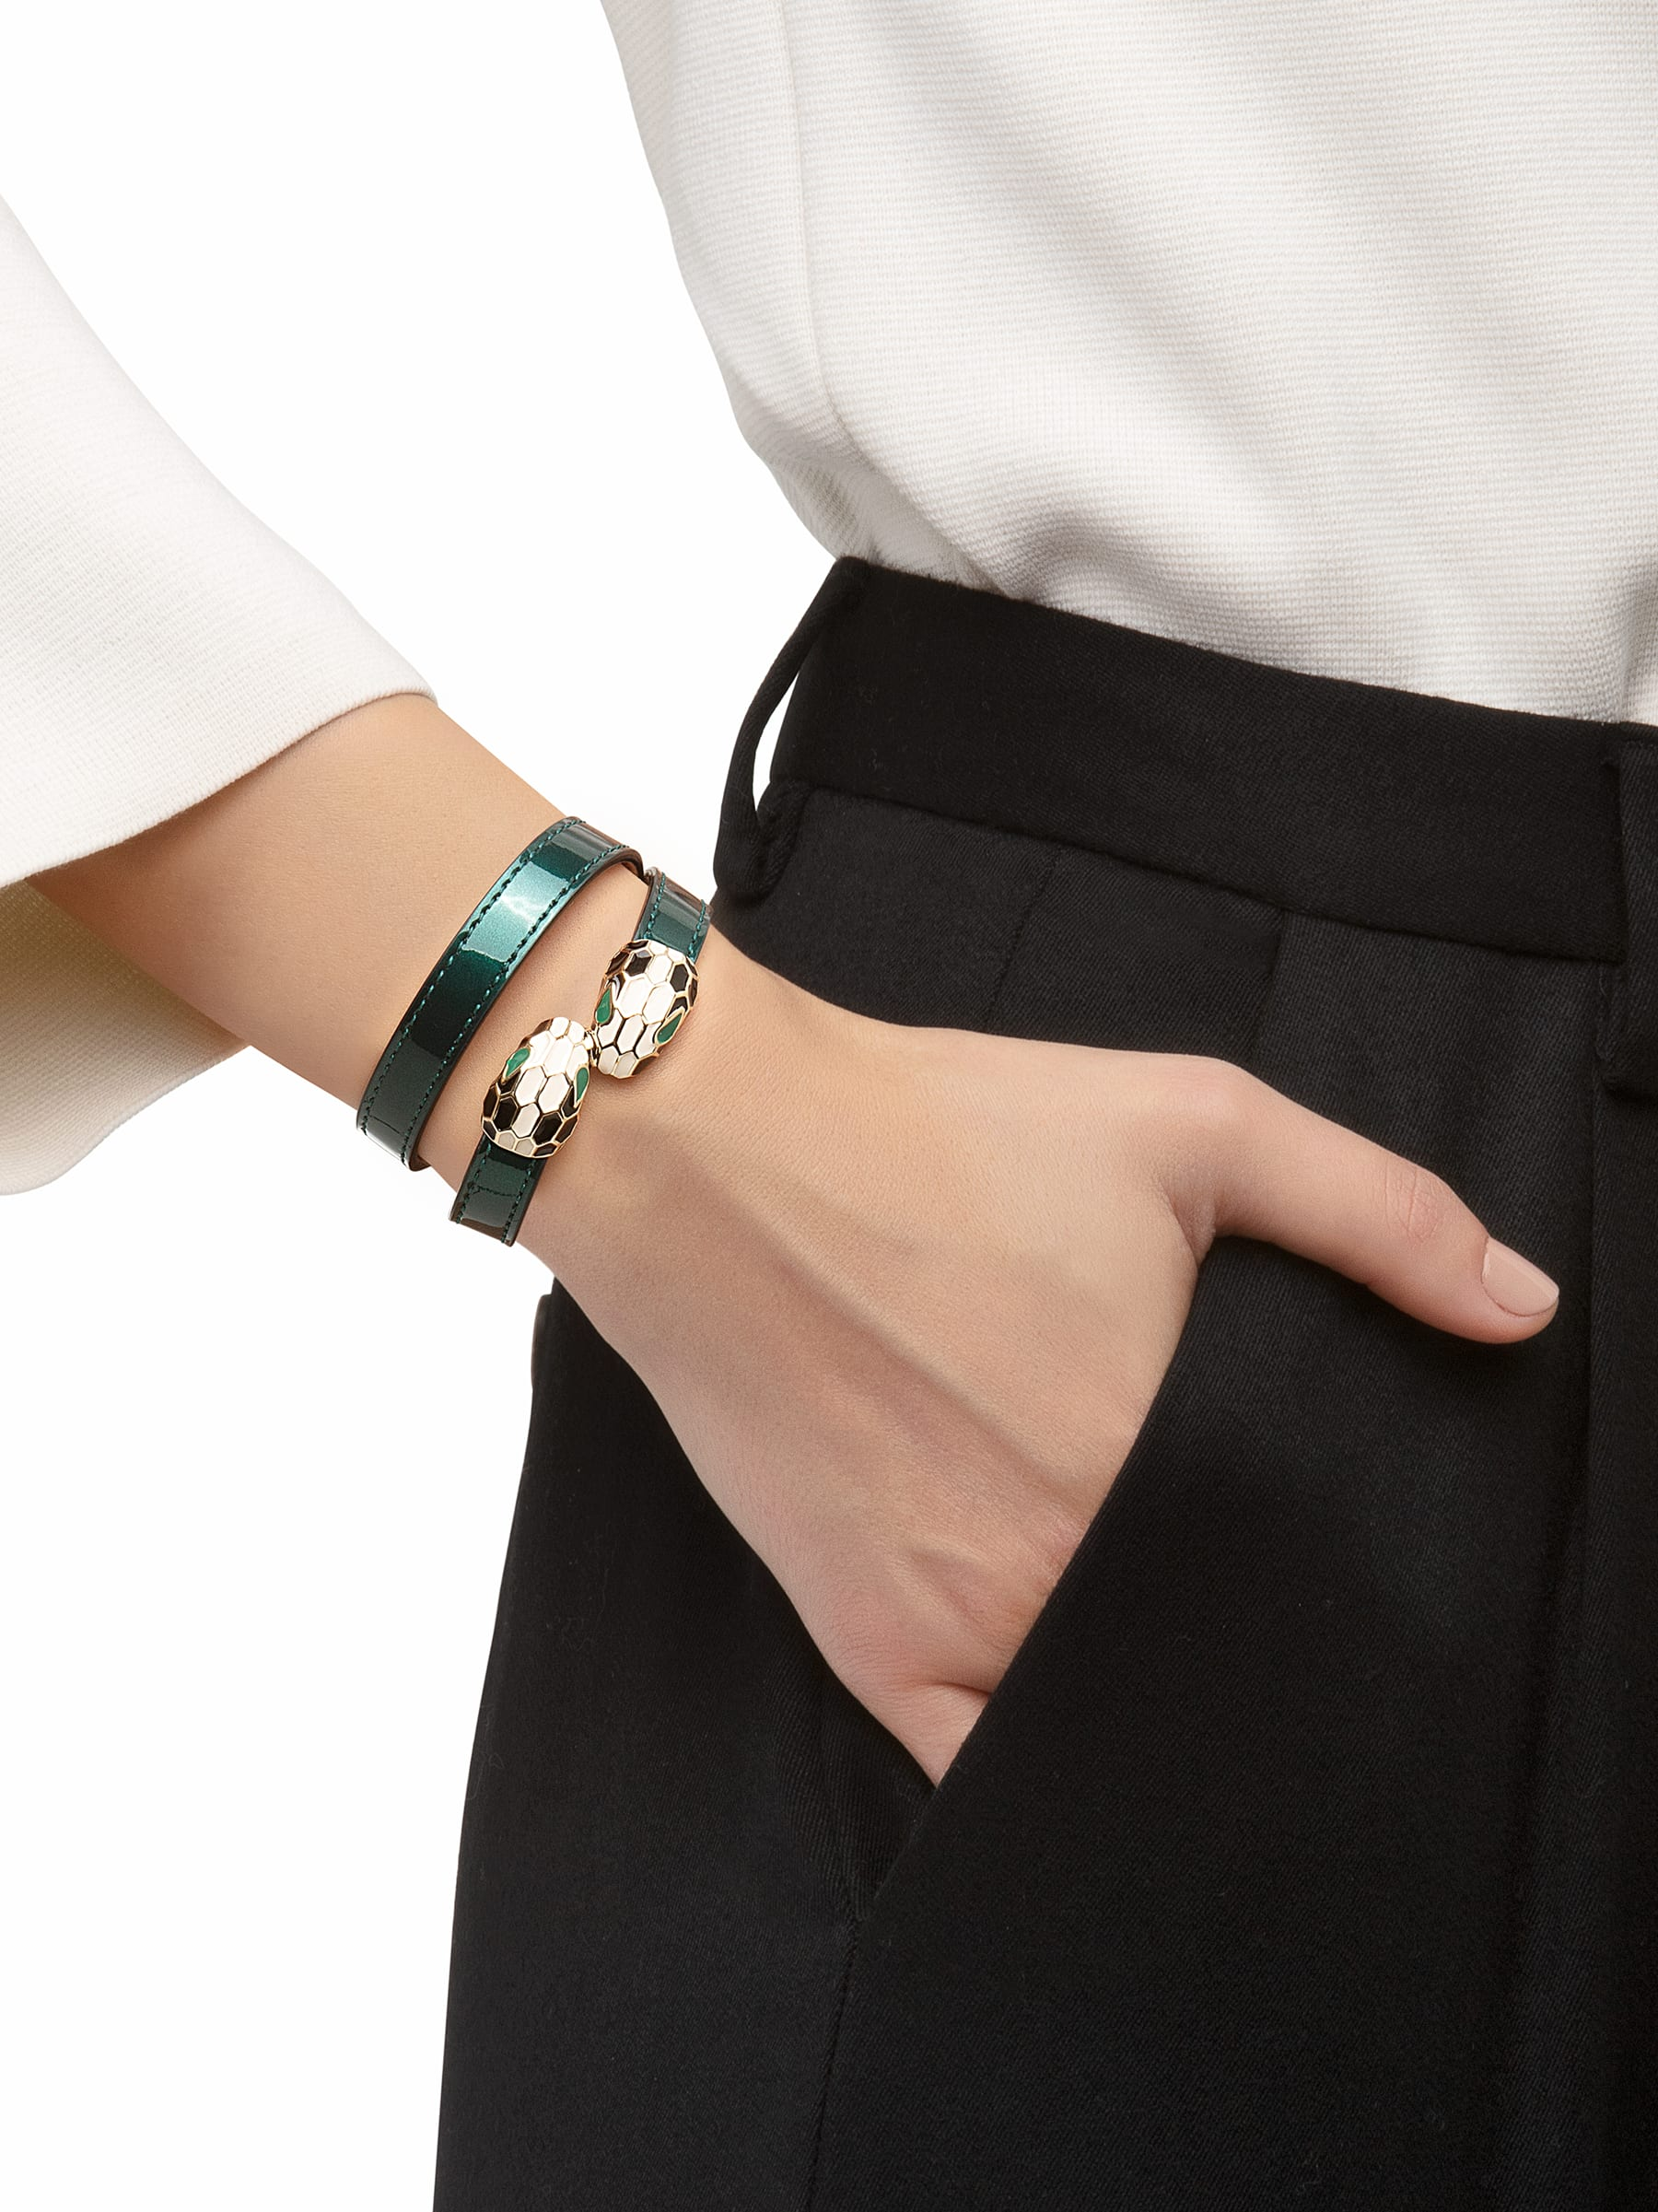 Multi-coiled bracelet in forest emerald brushed metallic calf leather. Brass light gold plated iconic contraire Serpenti heads in black and white enamel with green enamel eyes. MCSerp-BMCL-FE image 2